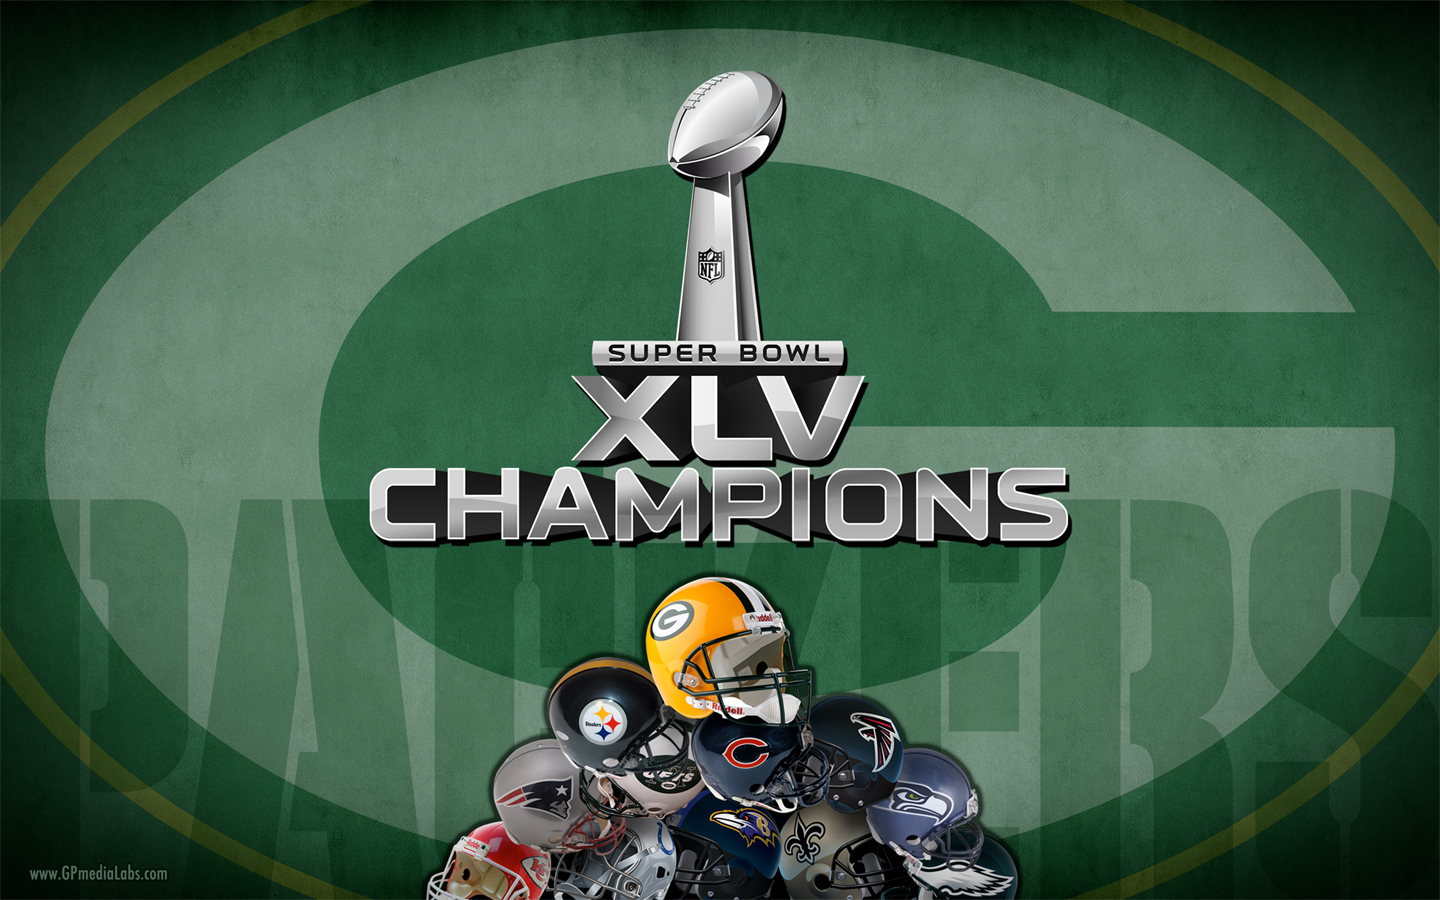 Green Bay Packers Wallpaper Super Bowl Champions Wallpaper Cool